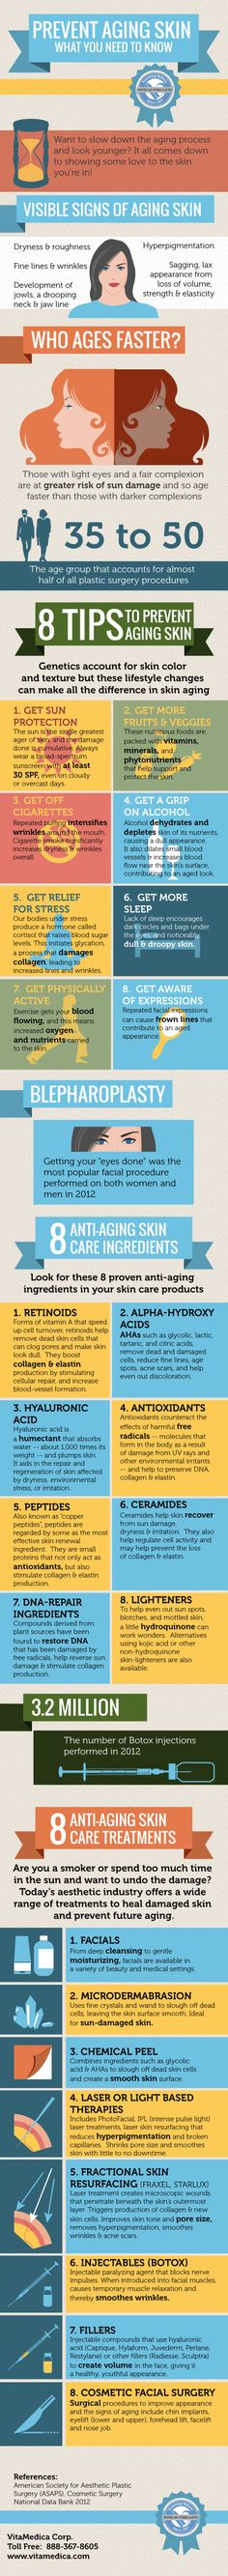 Prevent Aging Skin – What You Need to Know  Infographic